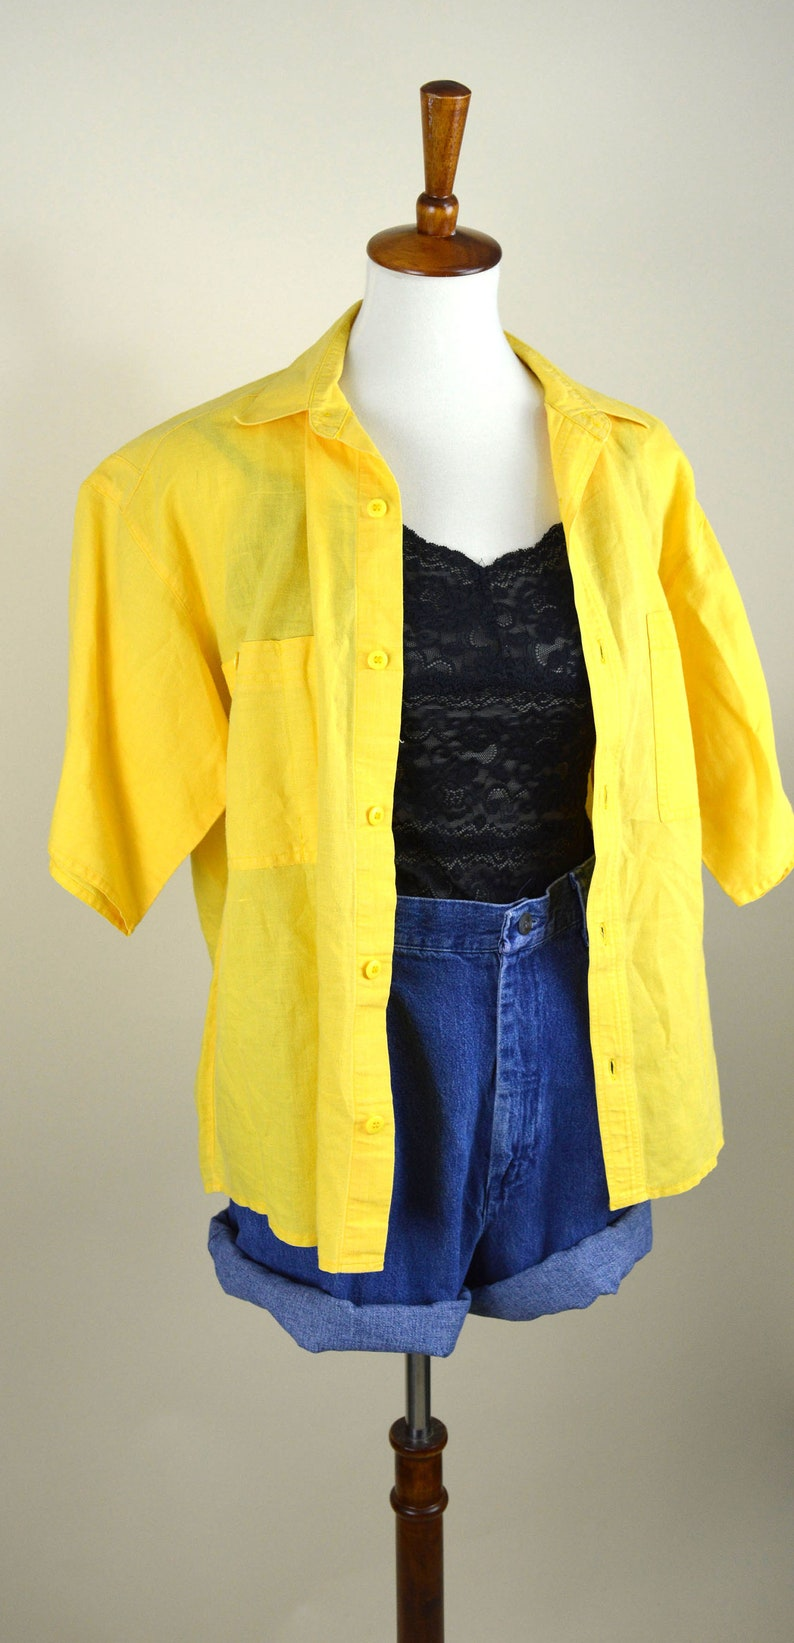 d0d70d7eafafa Vintage 90's Bright Canary Yellow Cotton Summer Shirt - Short Sleeve Button  up Blouse - Casual - Grunge - Pastel - Women's Size Large